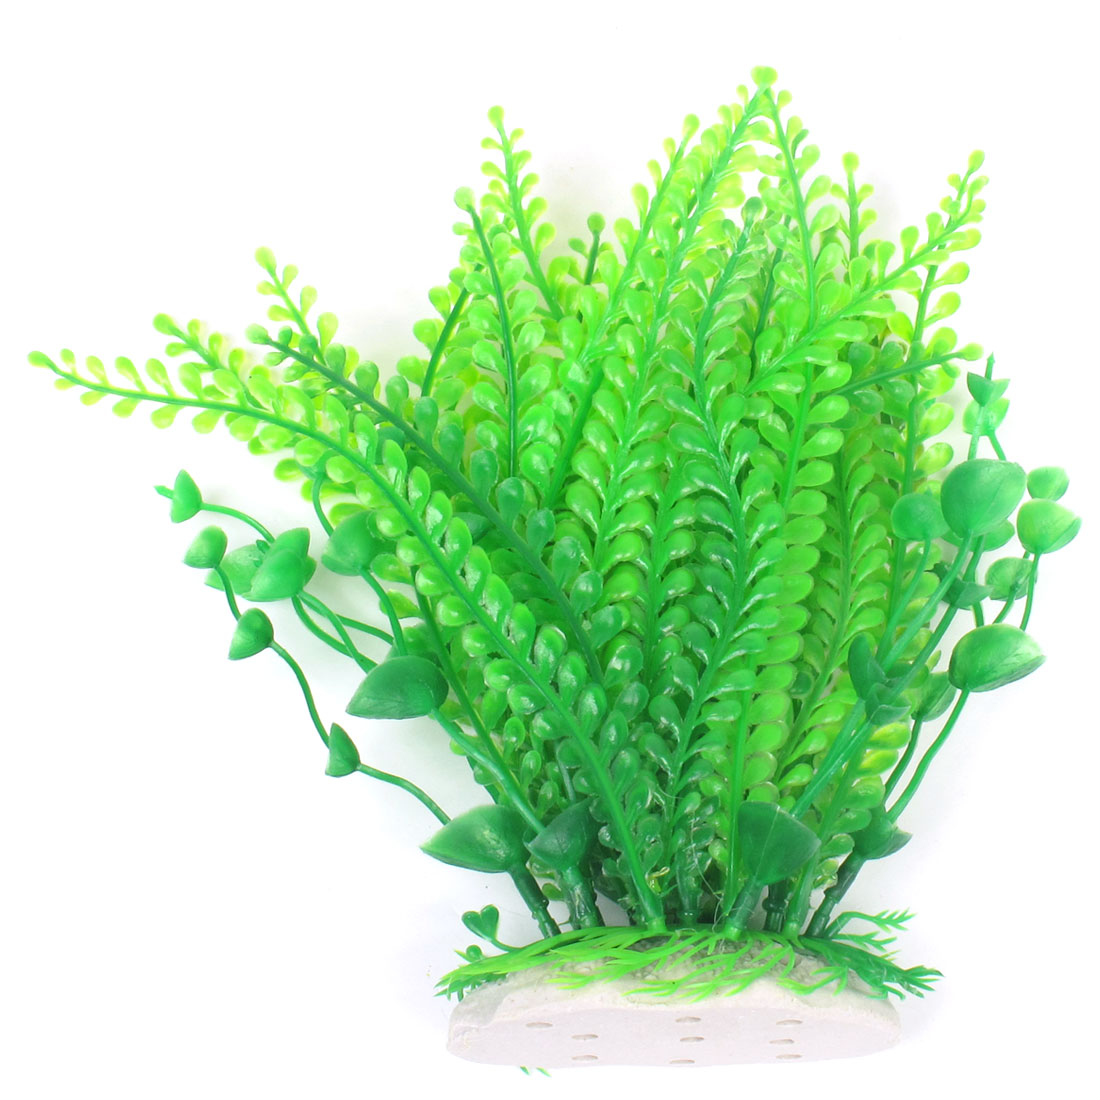 "Green Aquarium Plastic Simulation Grass Plant Decoration 7"" High"